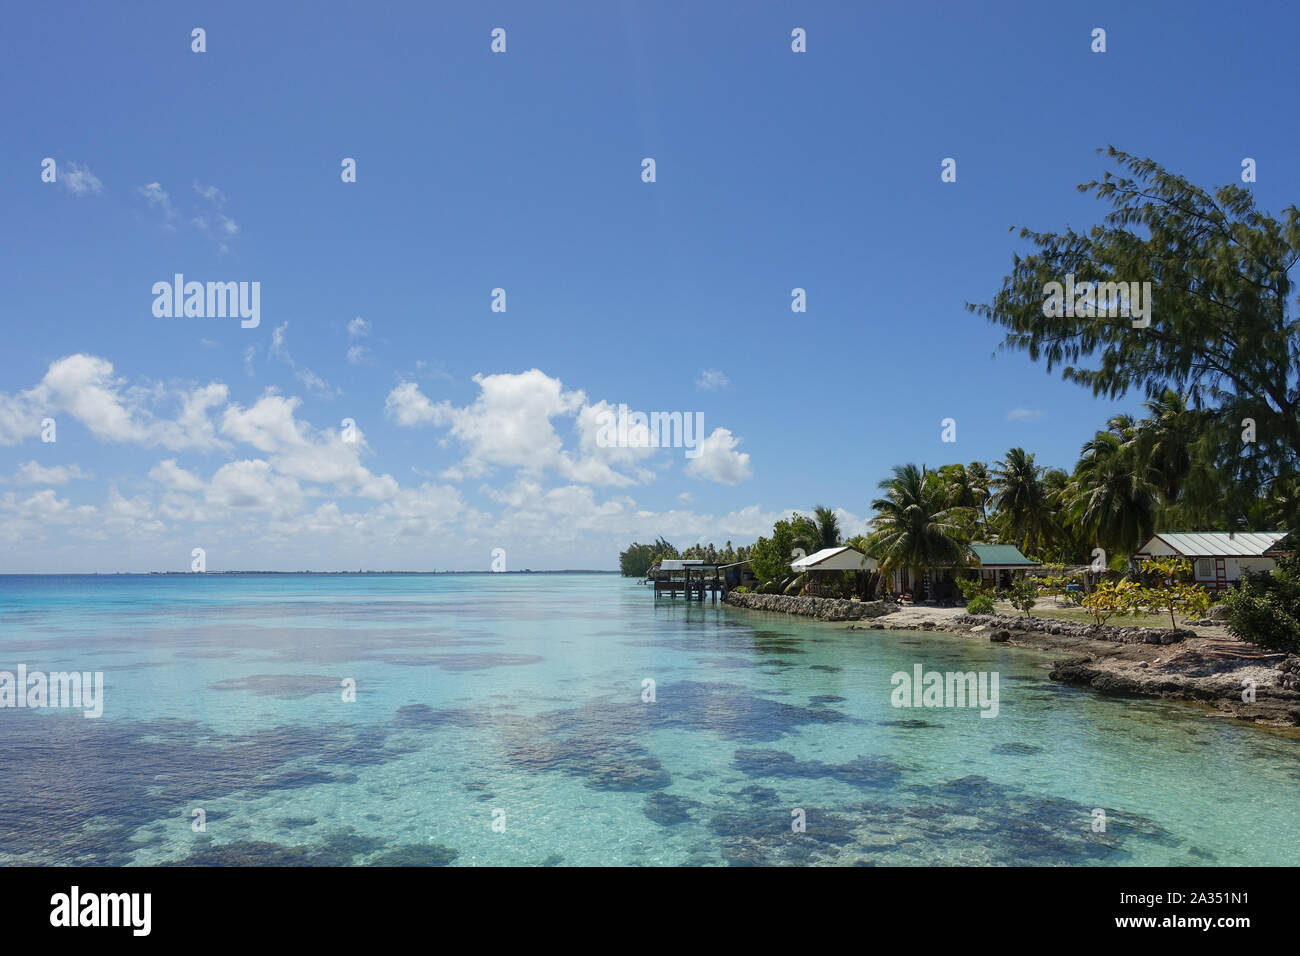 Houses and palm trees line the coast of a tropical lagoon on the island of Fakarava in French Polynesia Stock Photo